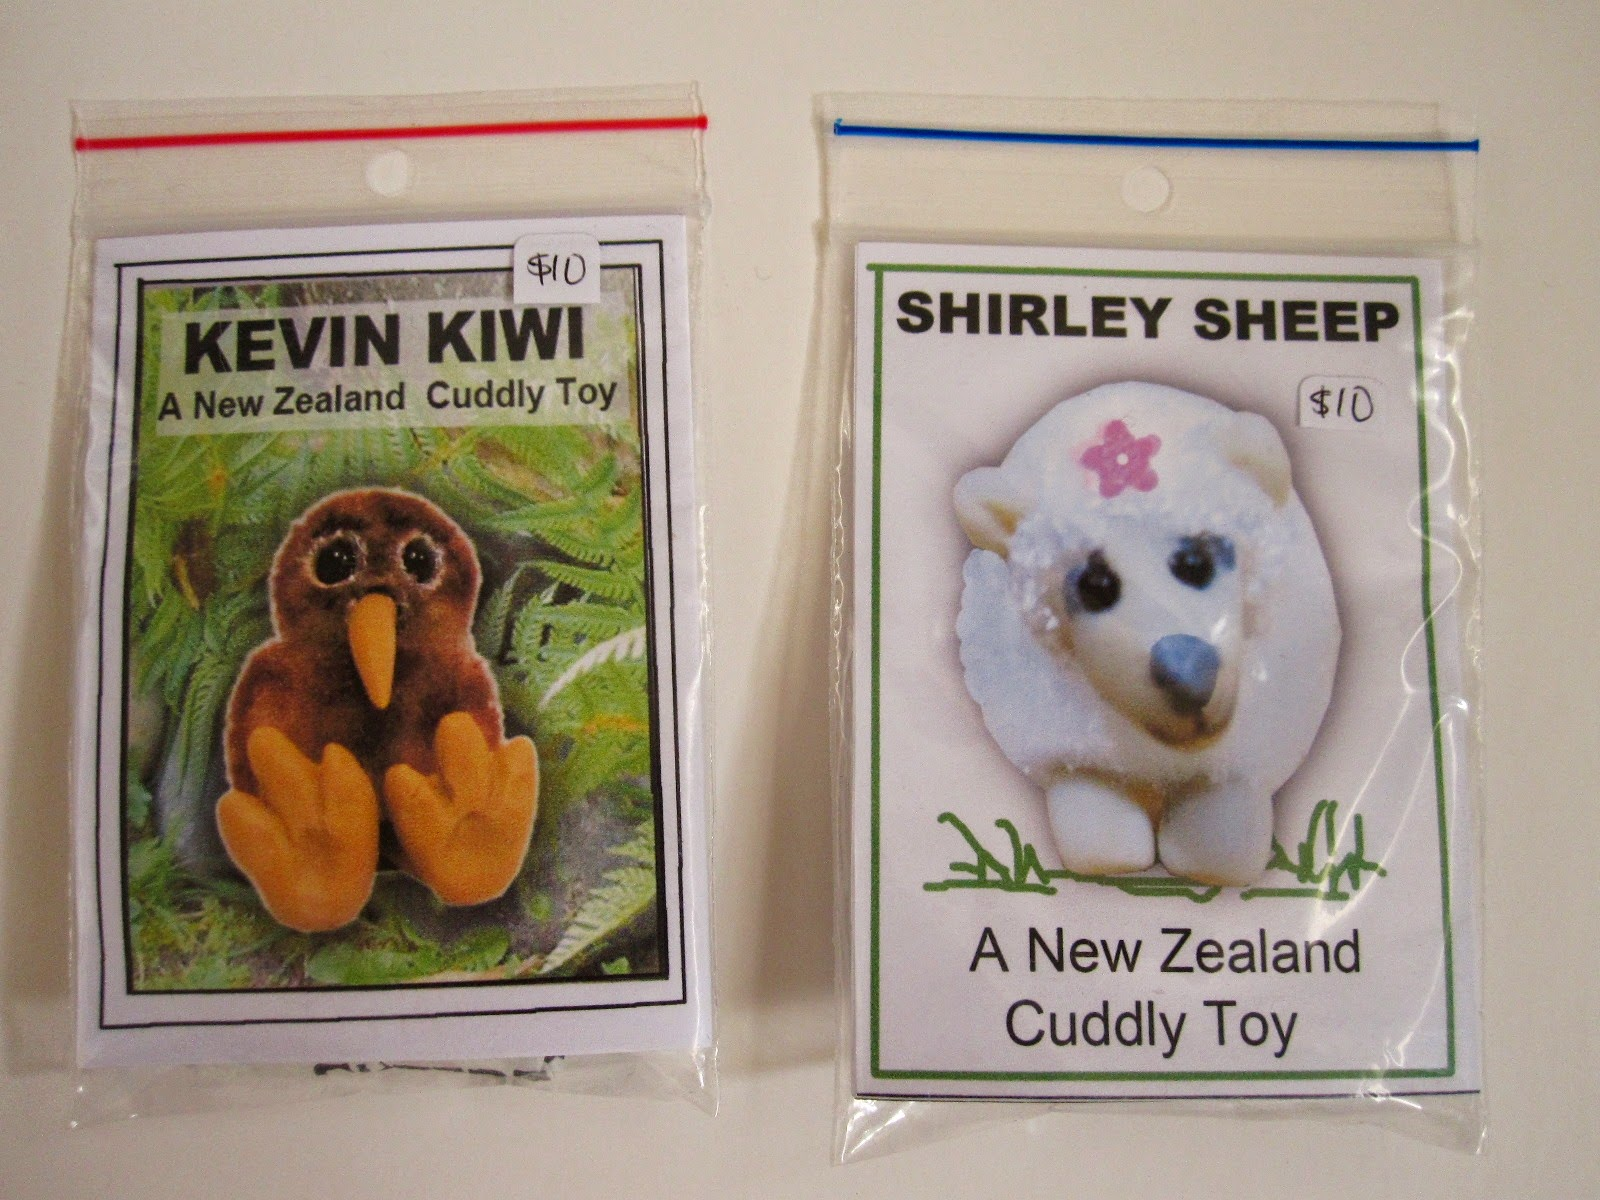 The fronts of two bagged miniature cuddly toy kits: Kevin Kiwi and Shirley Sheep.